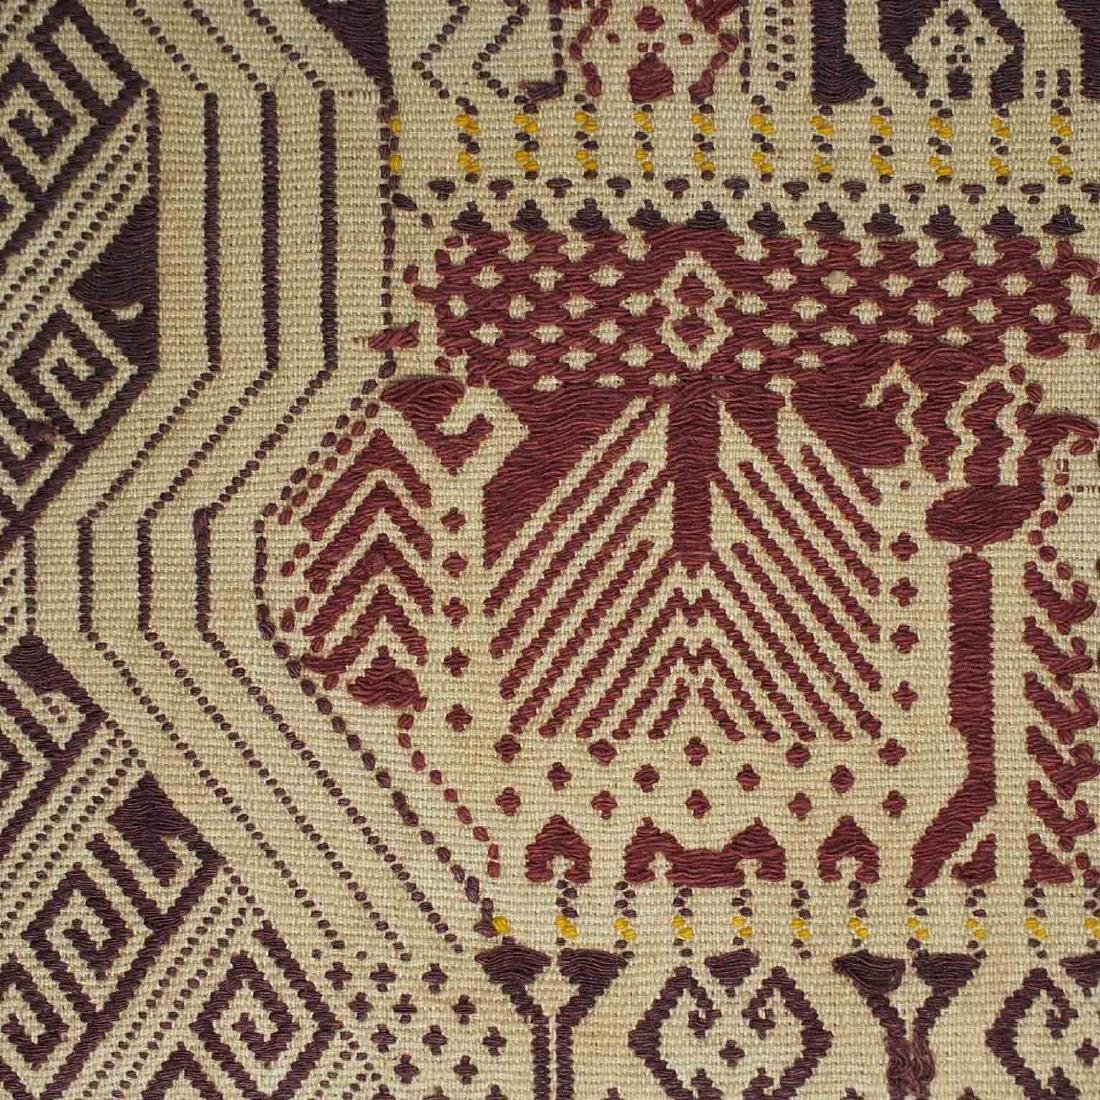 Old Carpet with Typical Lampung Design, Lampung - 3